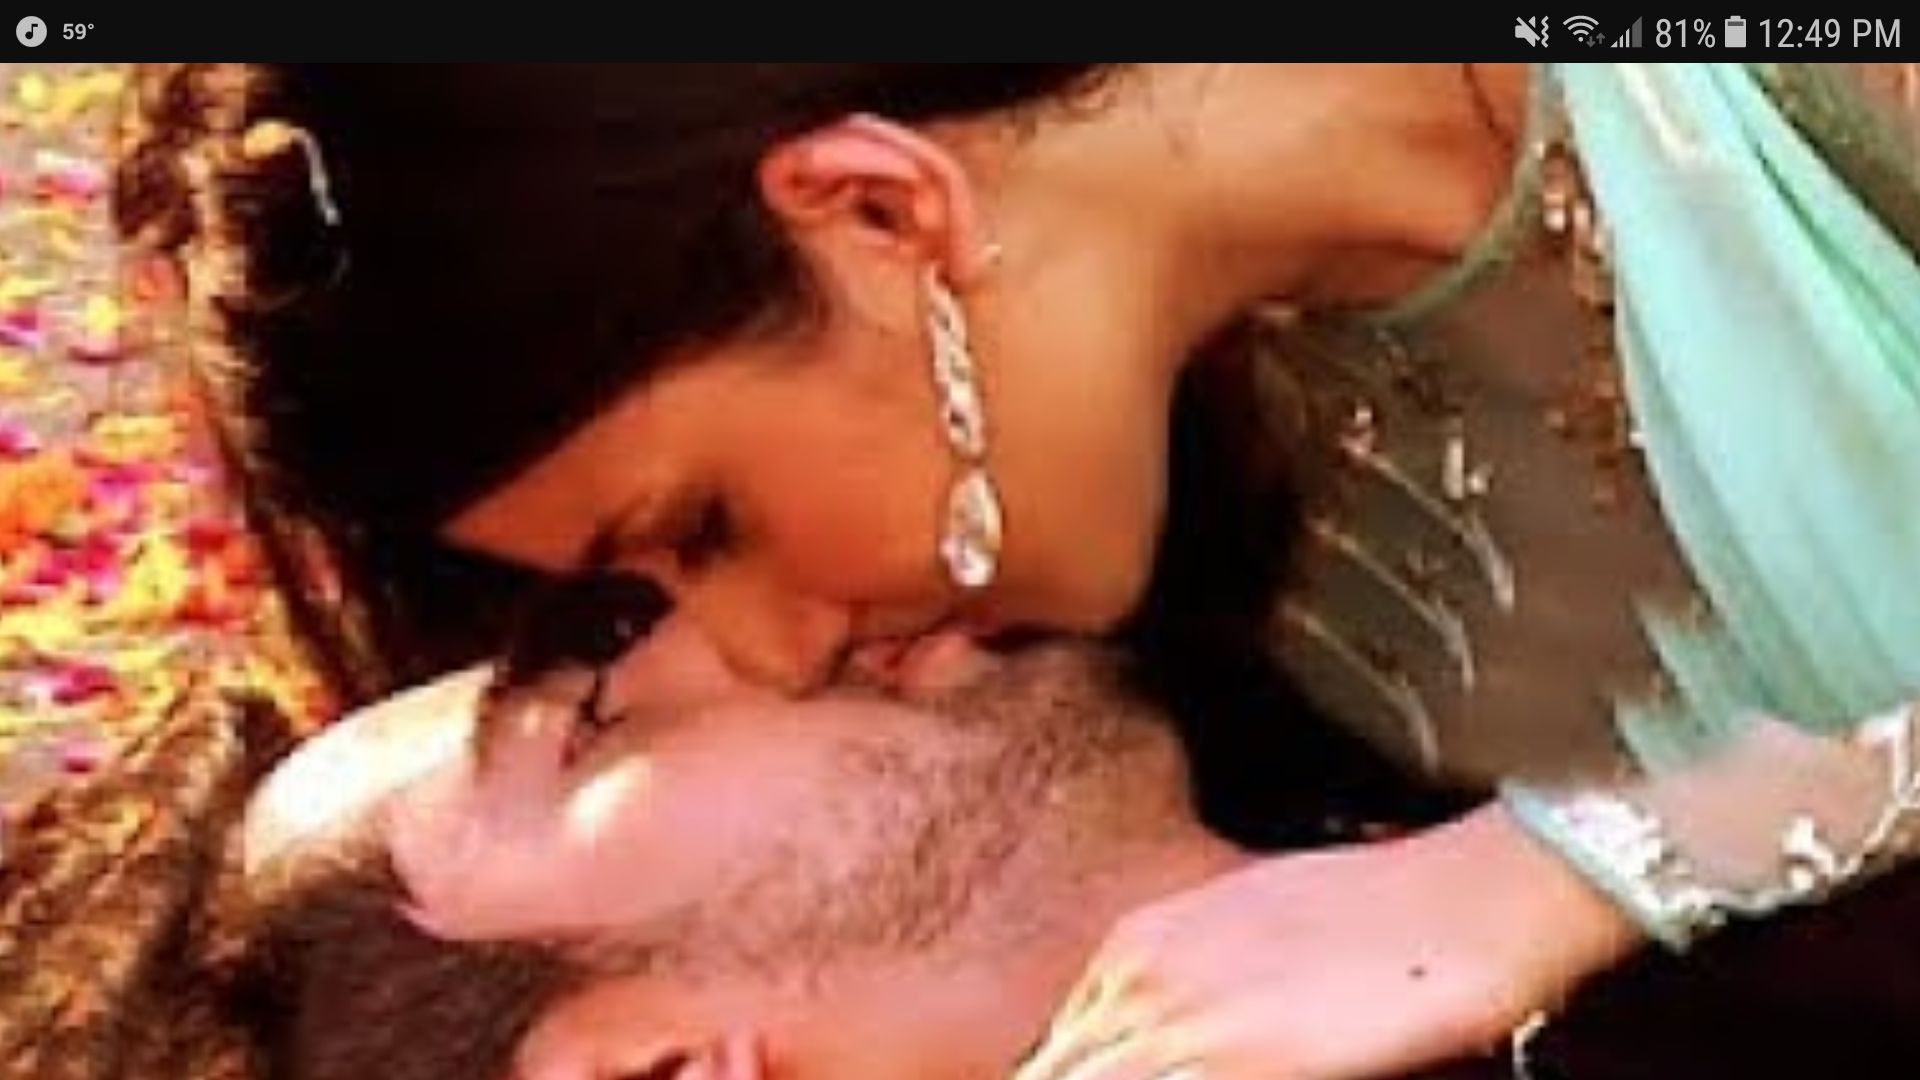 Avneil - being with you - kiss      - Wattpad